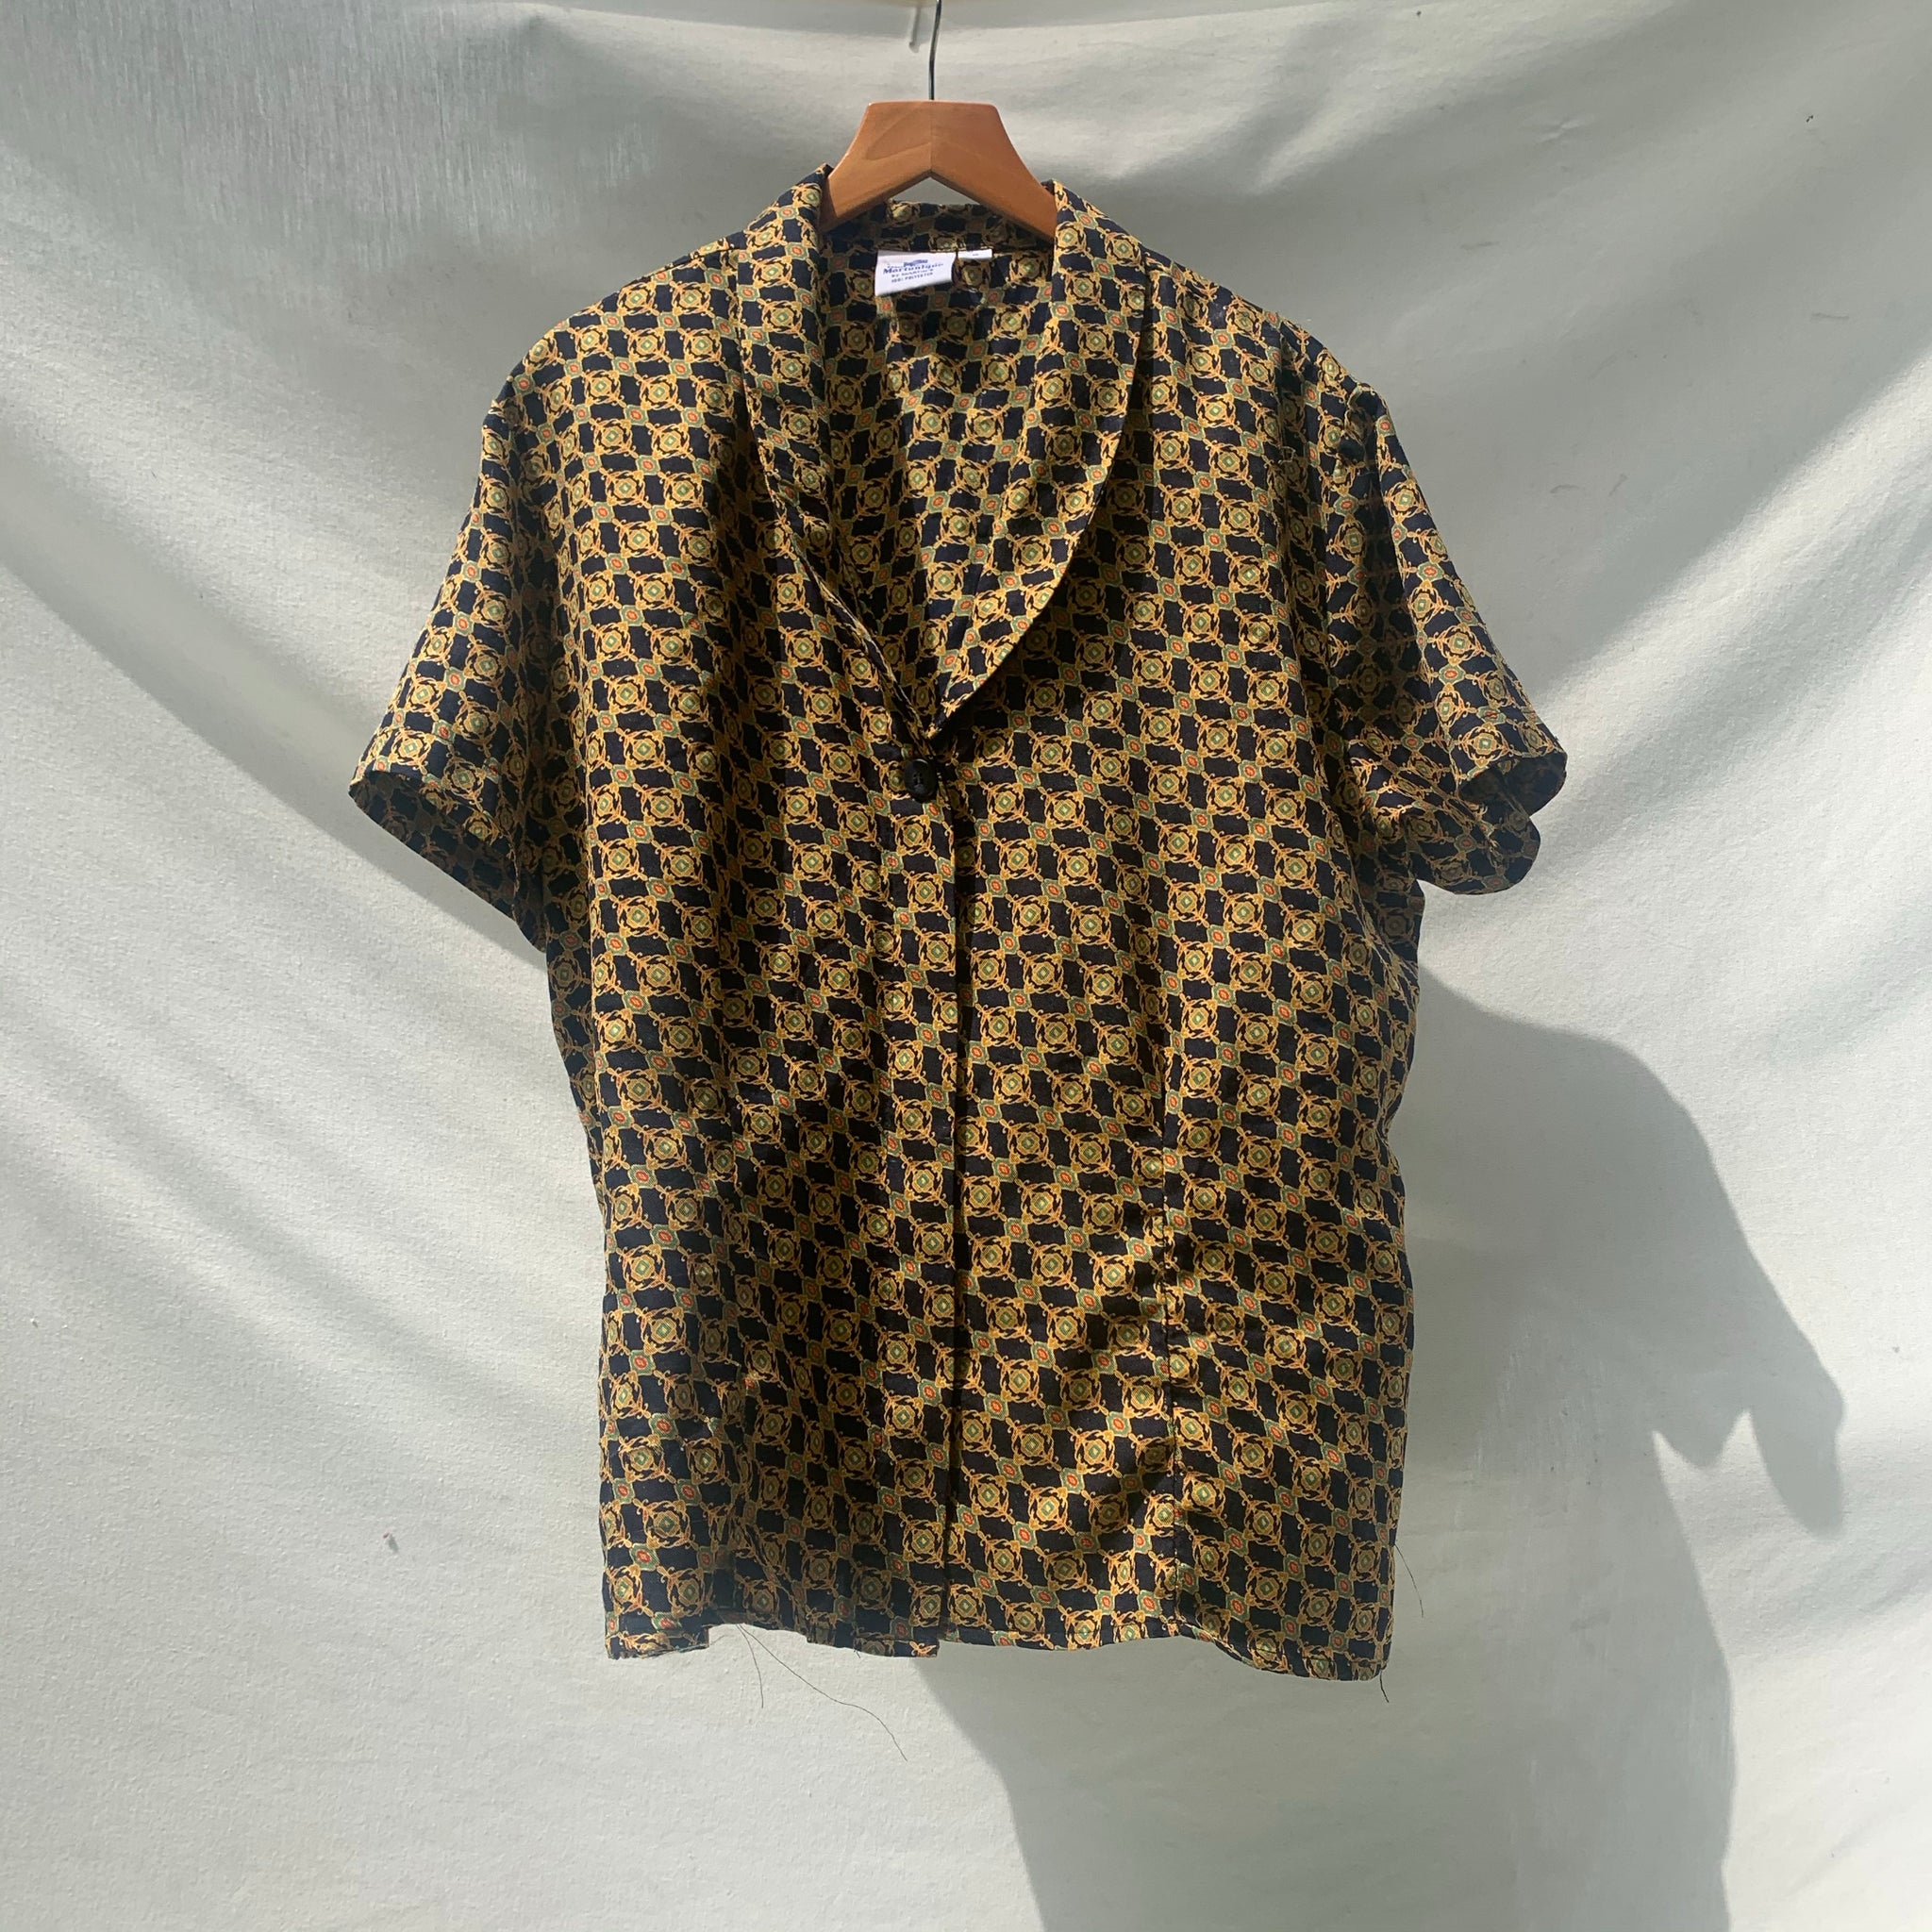 'Martina' Gold Patterned Blouse (One Size) - Shop Vanilla Vintage